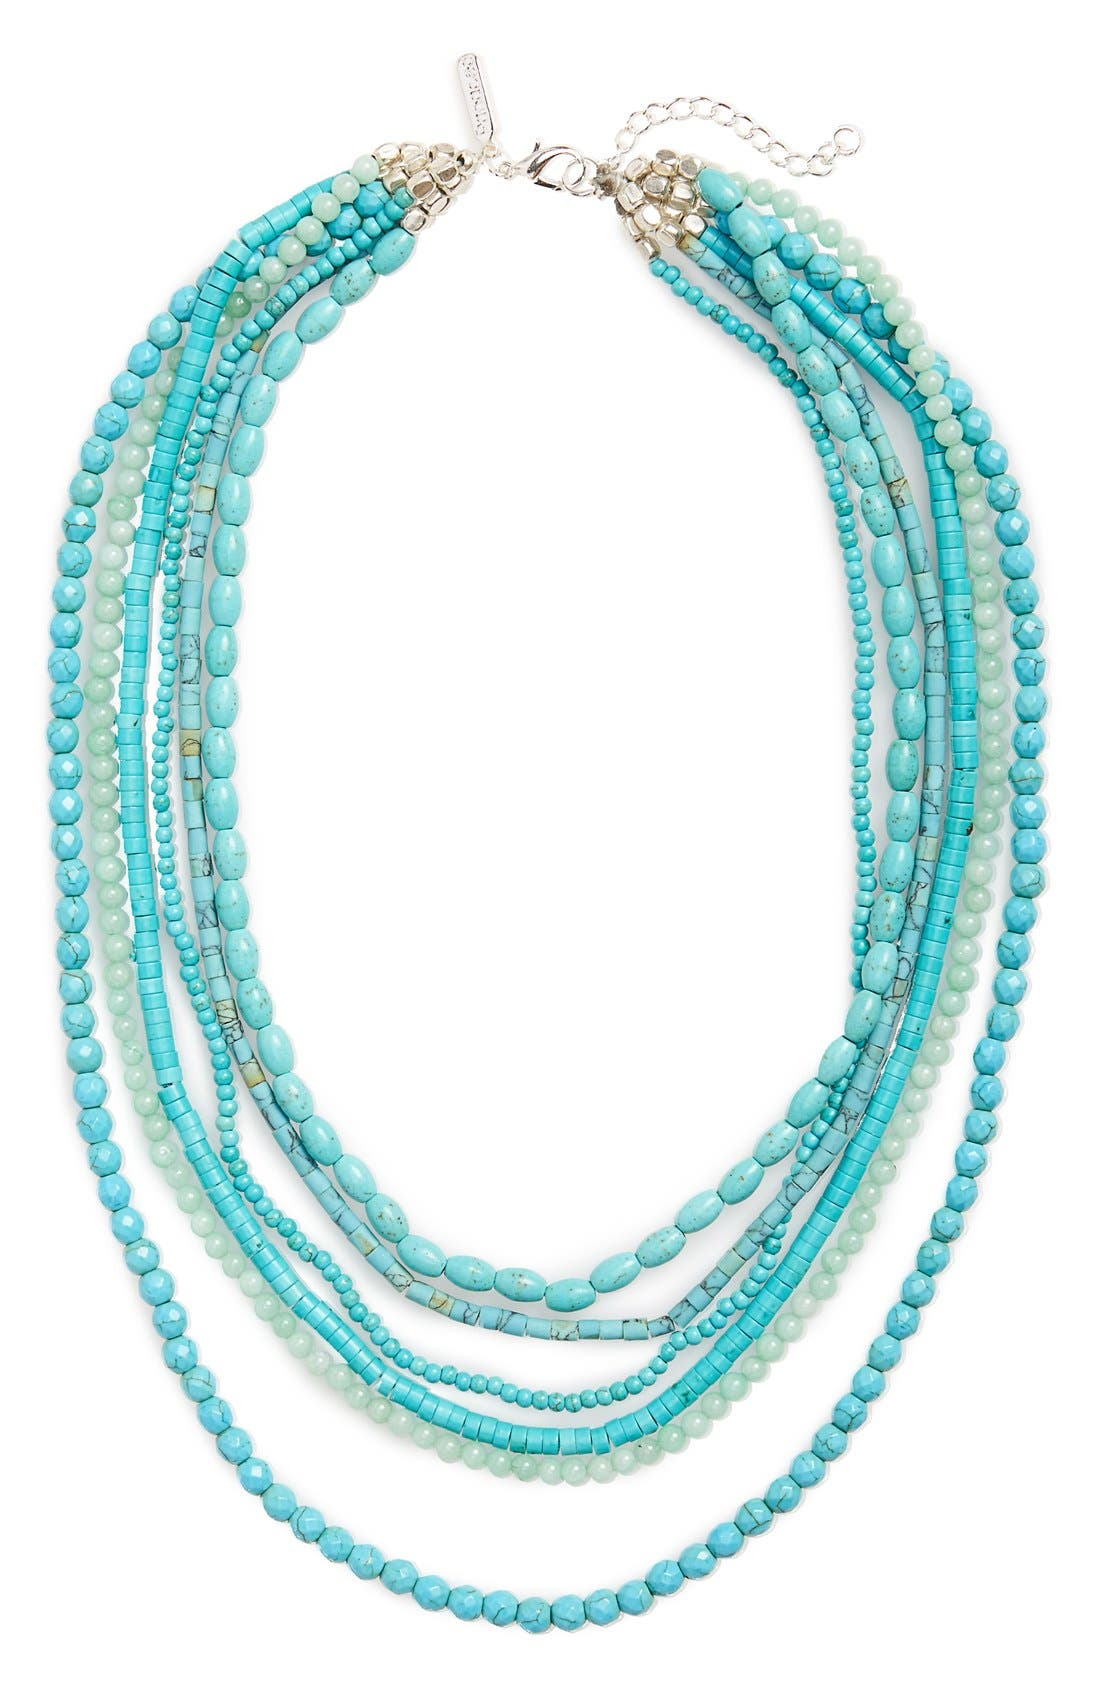 Alternate Image 1 Selected - Panacea Multistrand Statement Necklace